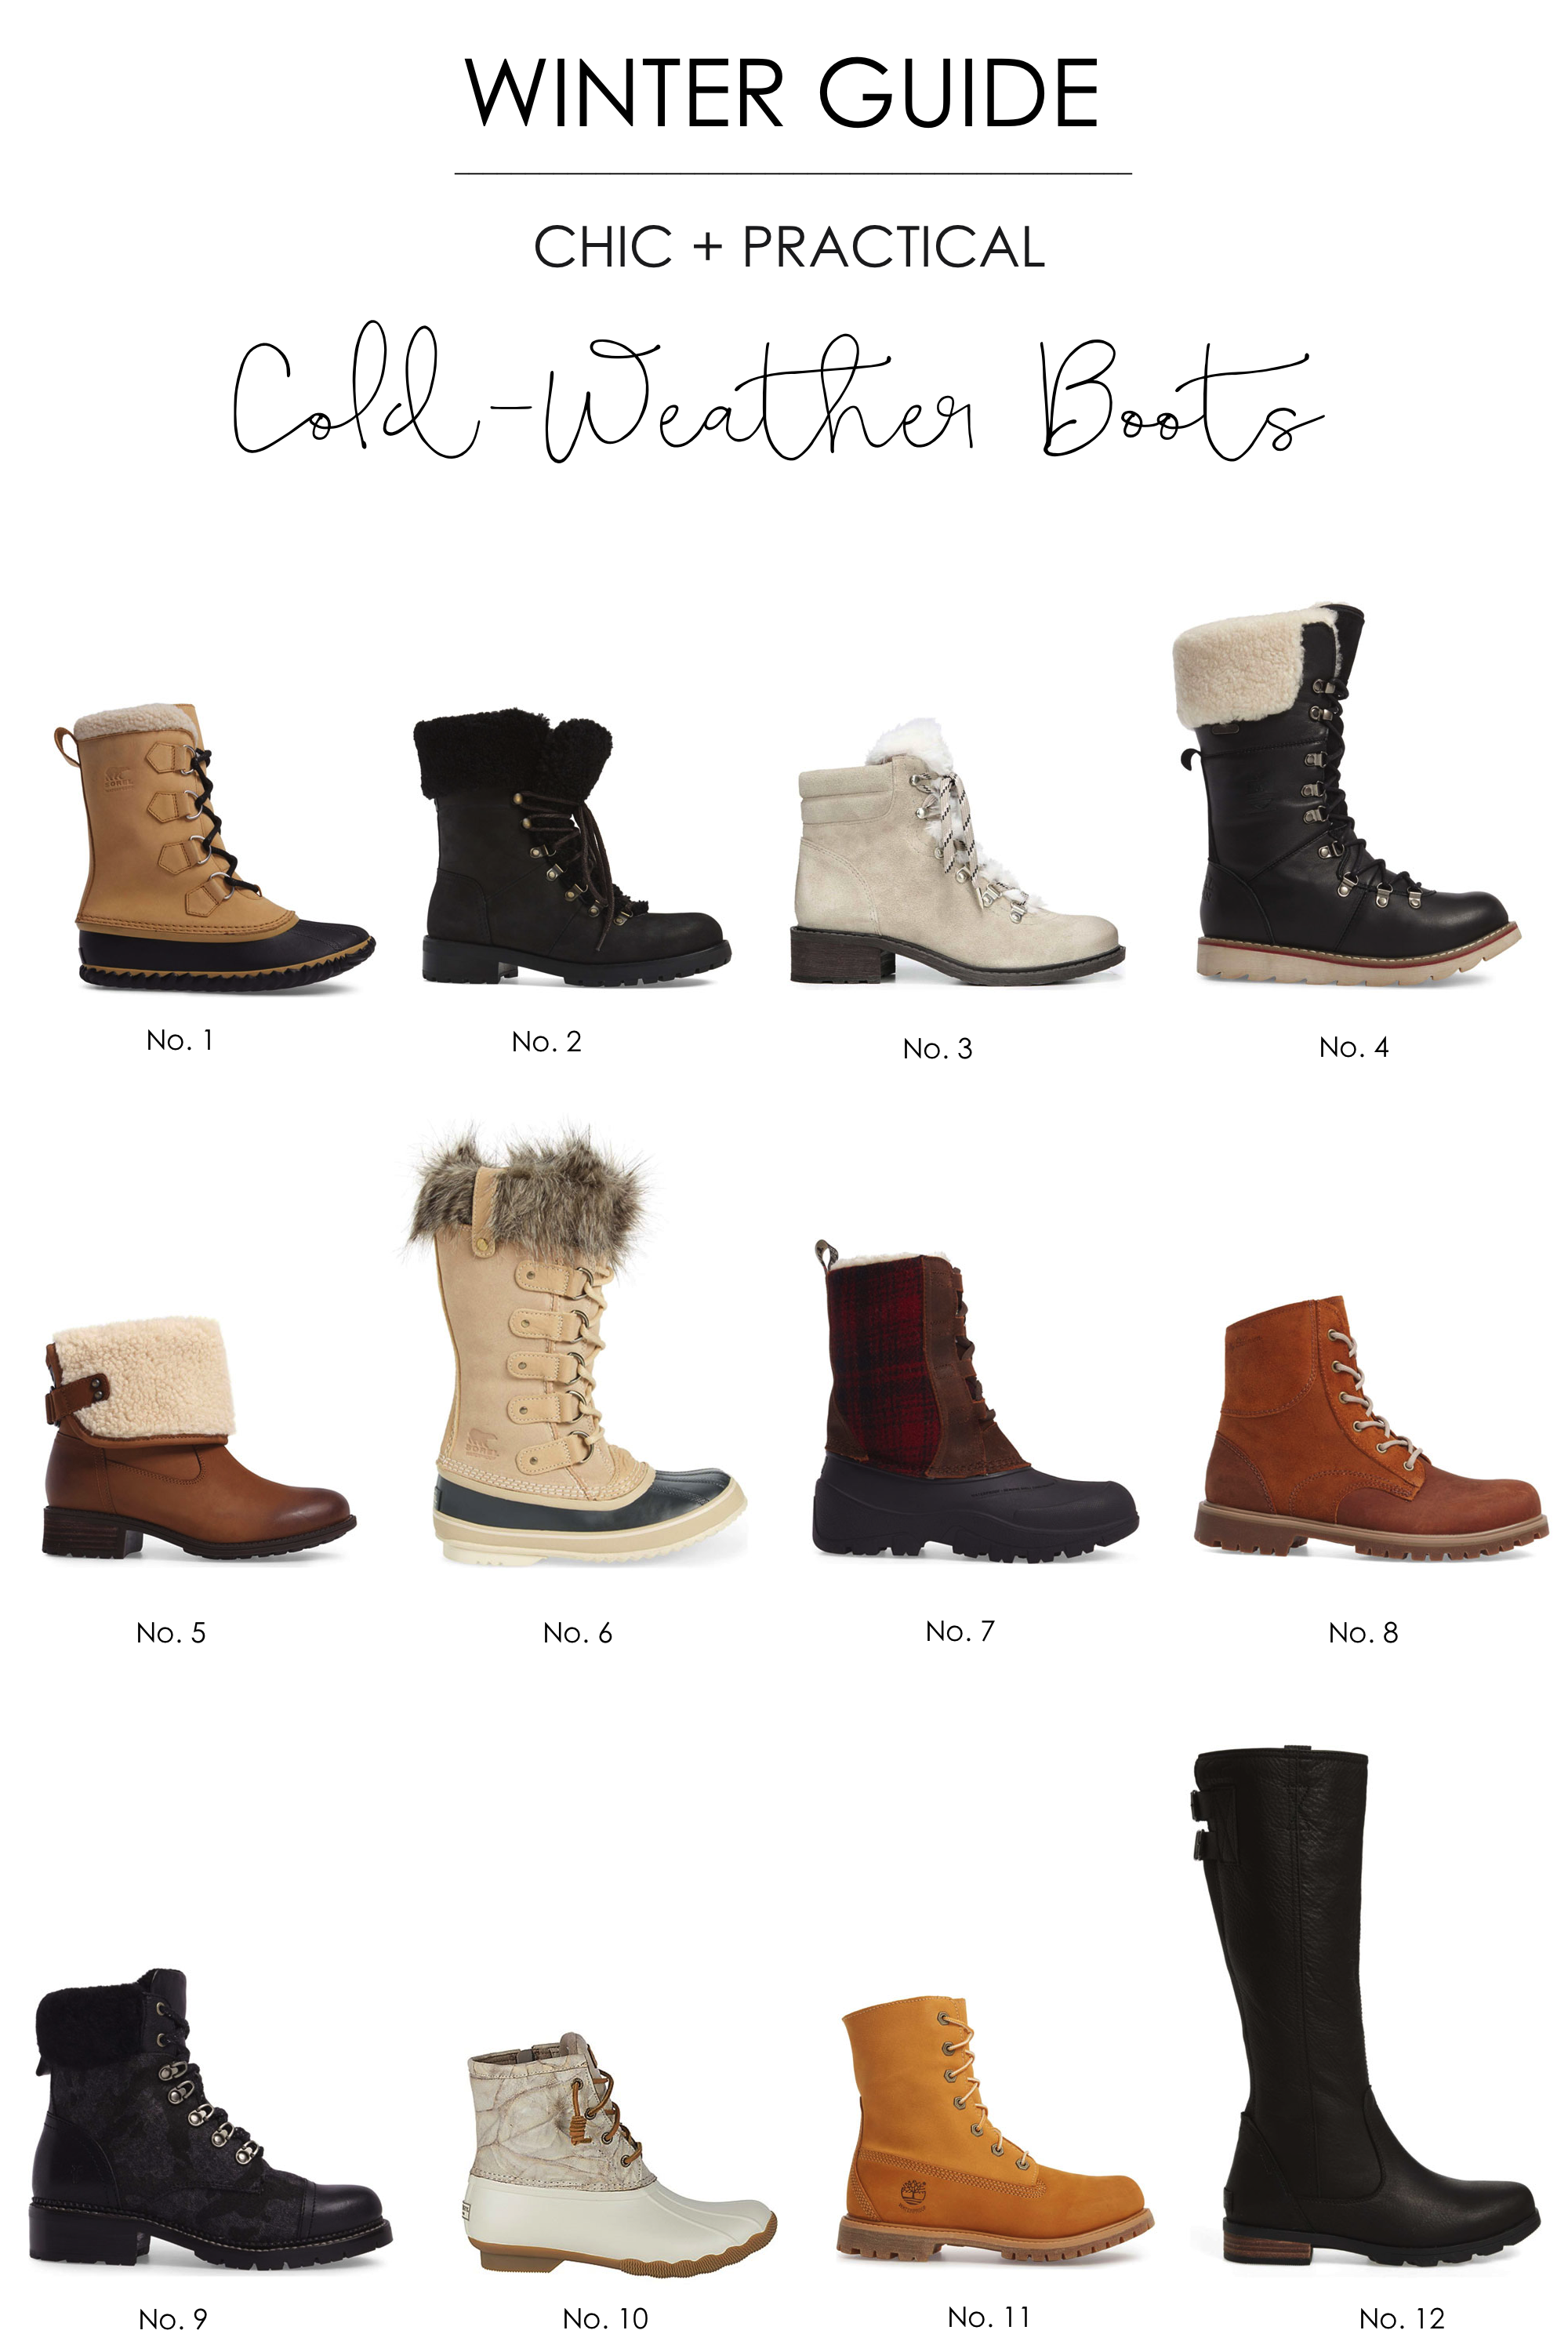 c3f0d7de85439 You don't have to sacrifice style for warmth when it comes to winter boots.  Here's a guide to the best boots that will keep your feet toasty and dry!